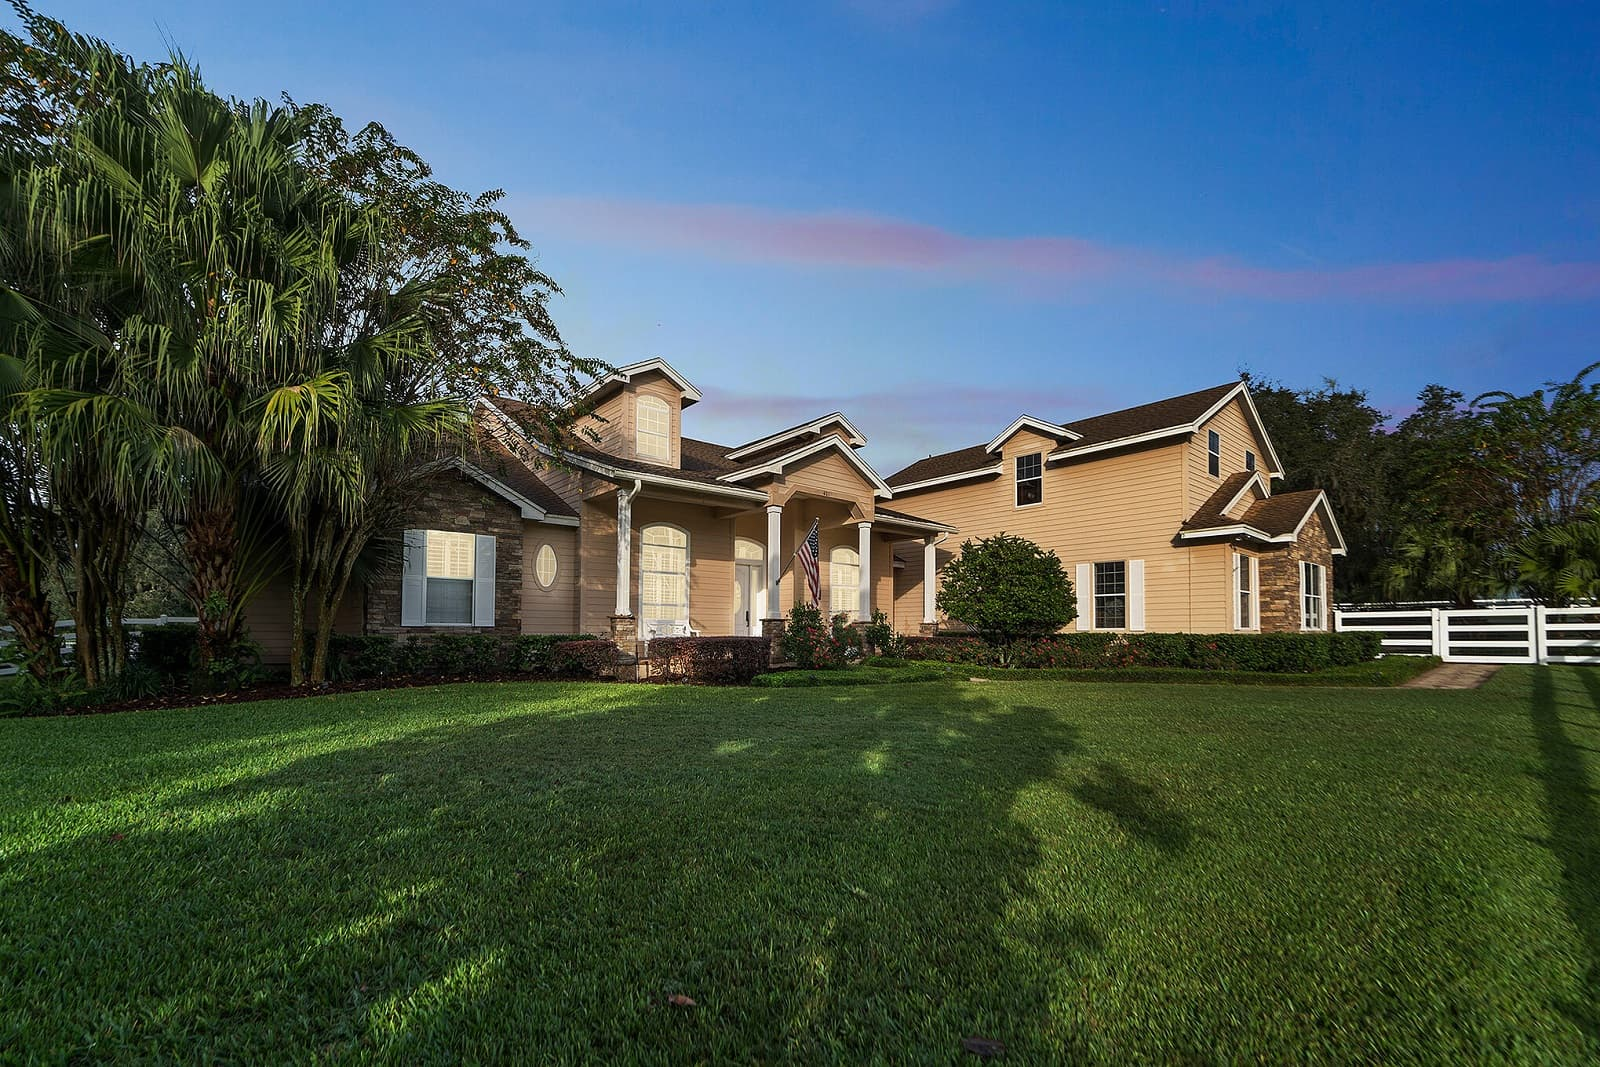 Real Estate Photography in Apopka - FL - USA - Front View